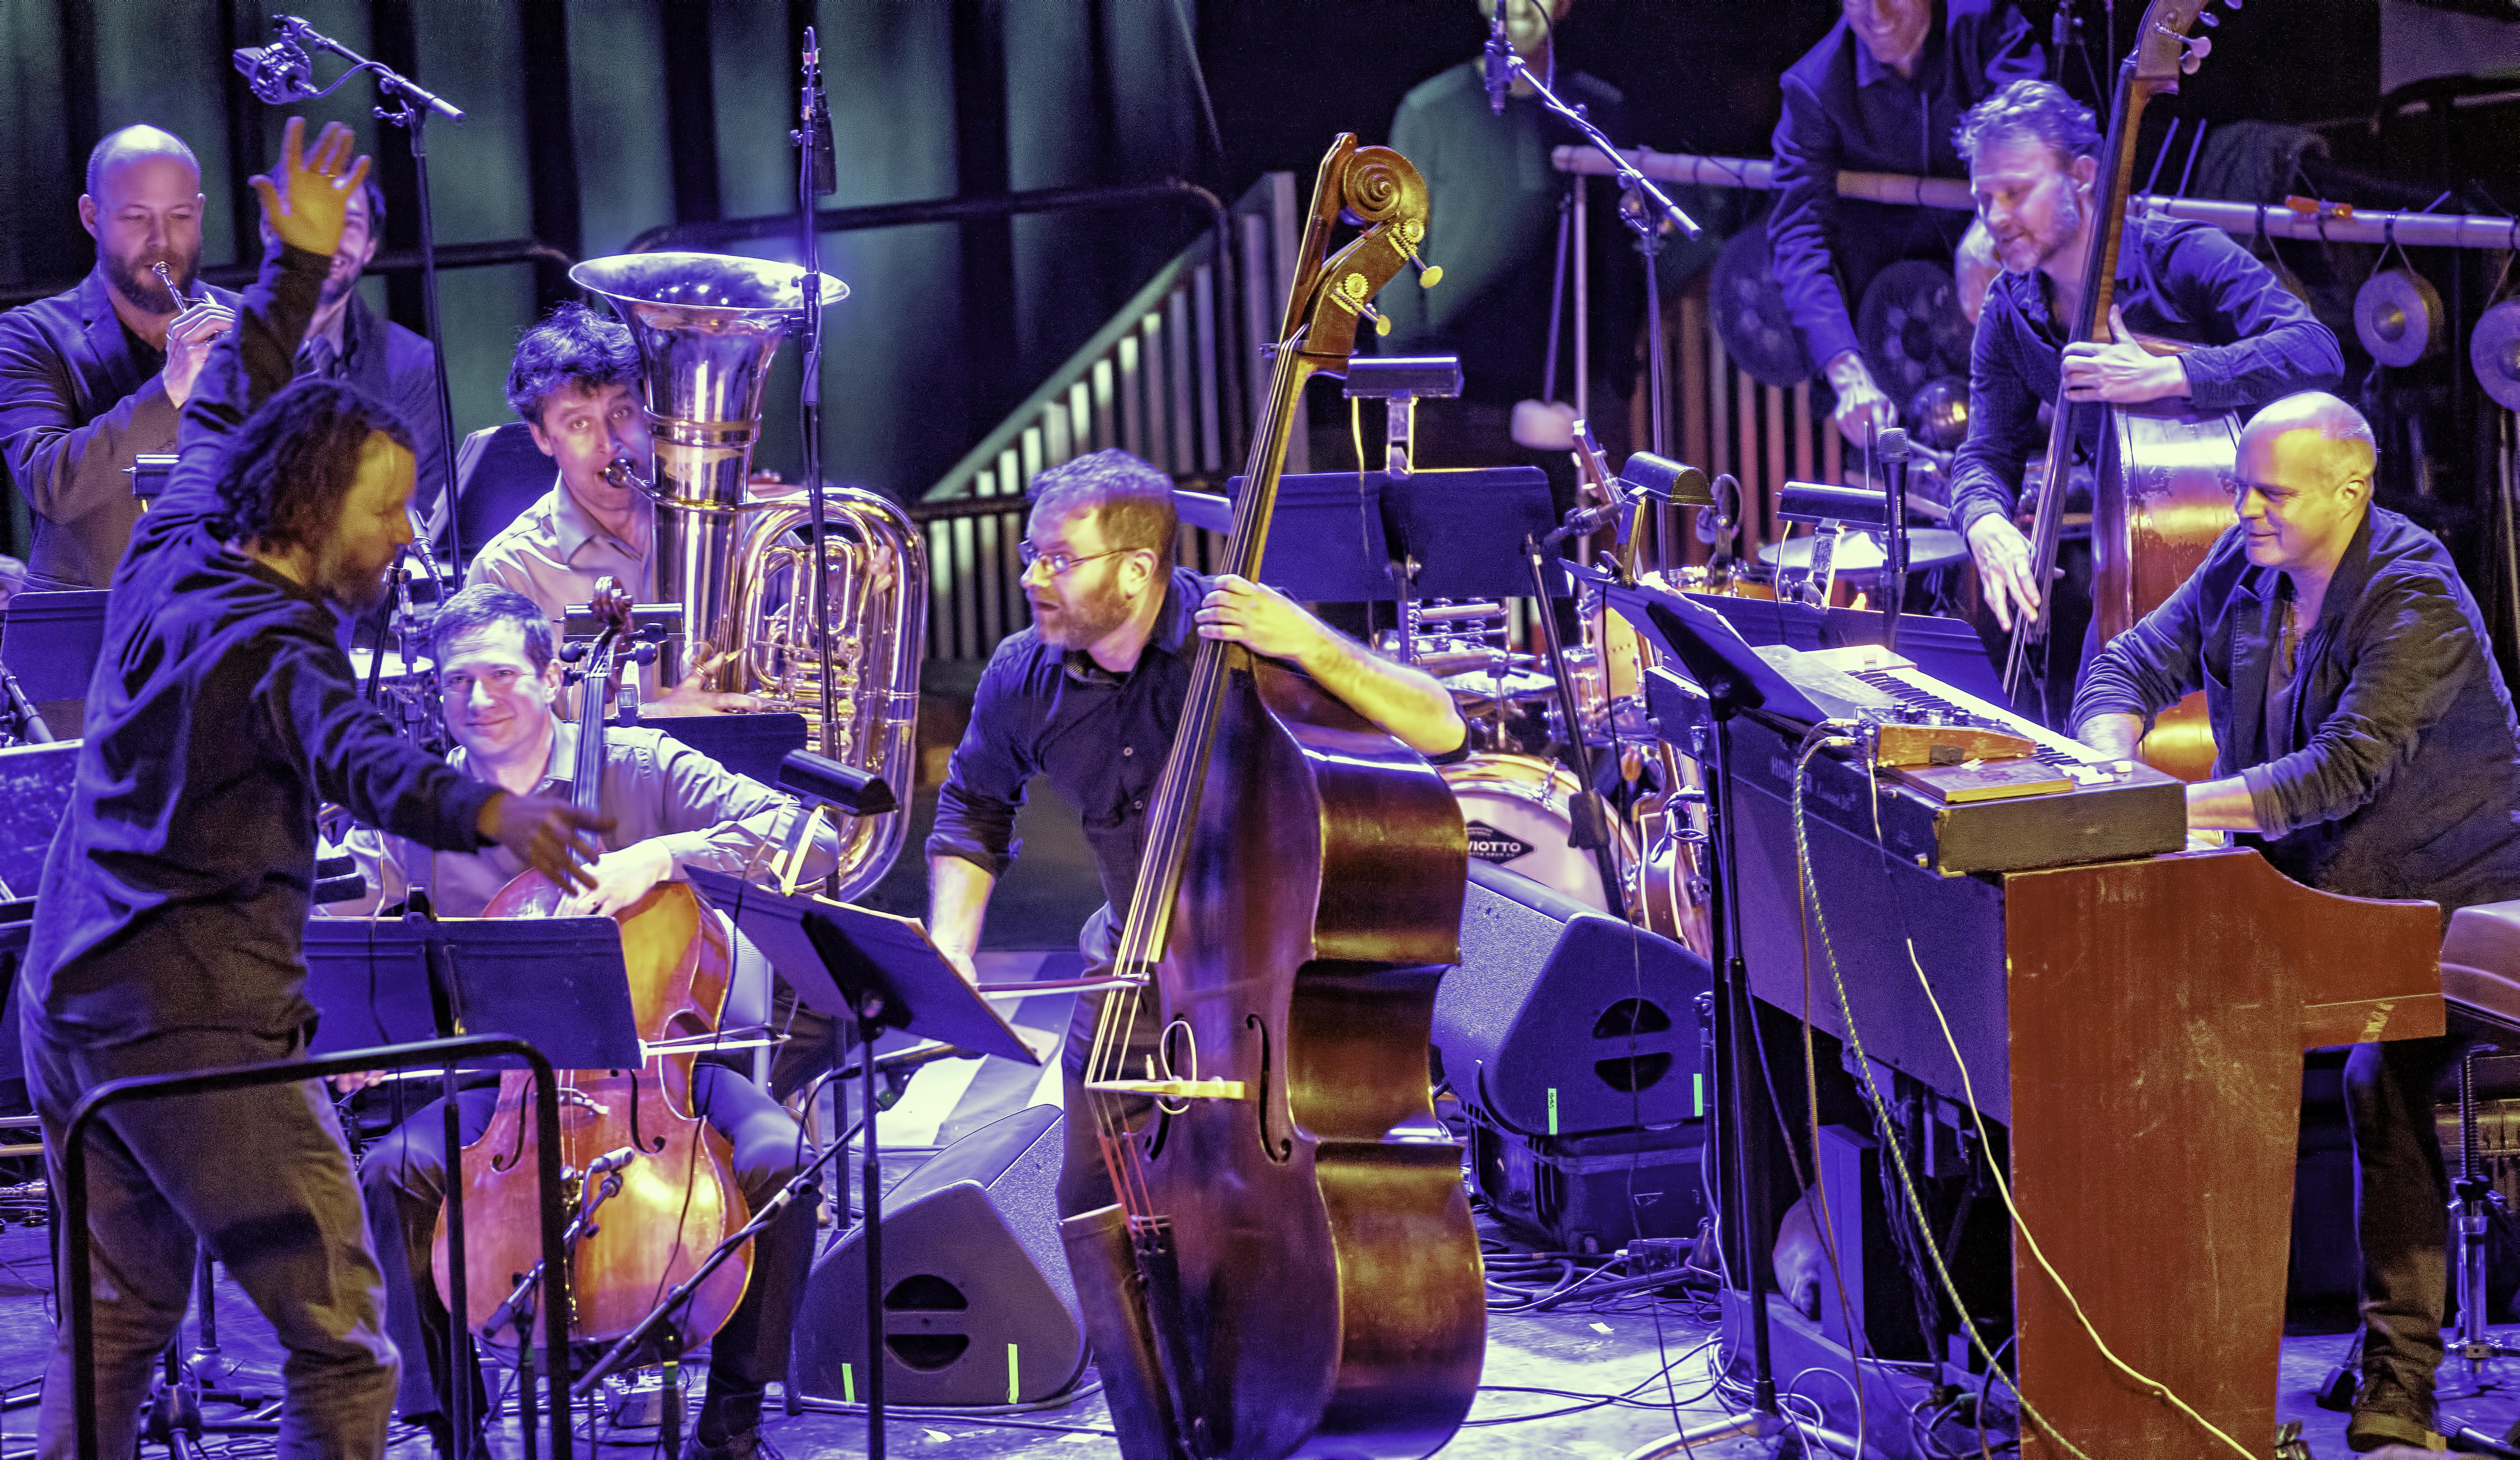 Alan Pierson and Miles Brown with Alarm Will Sound and Medeski, Martin and Wood at the NYC Winter Jazzfest 2019